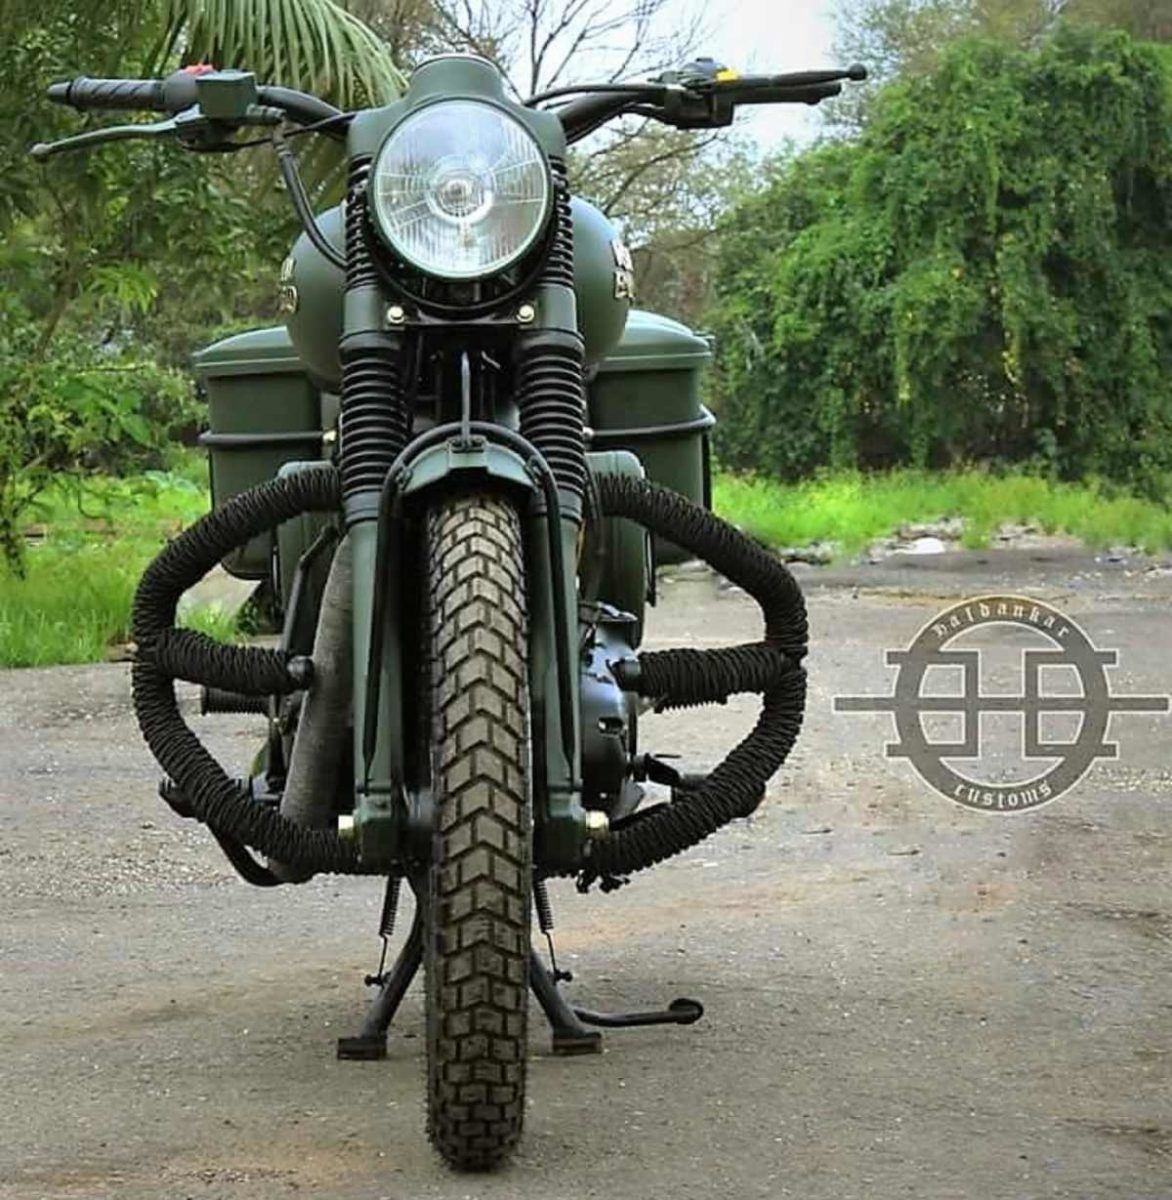 Encode Royal enfield classic 350 (3)